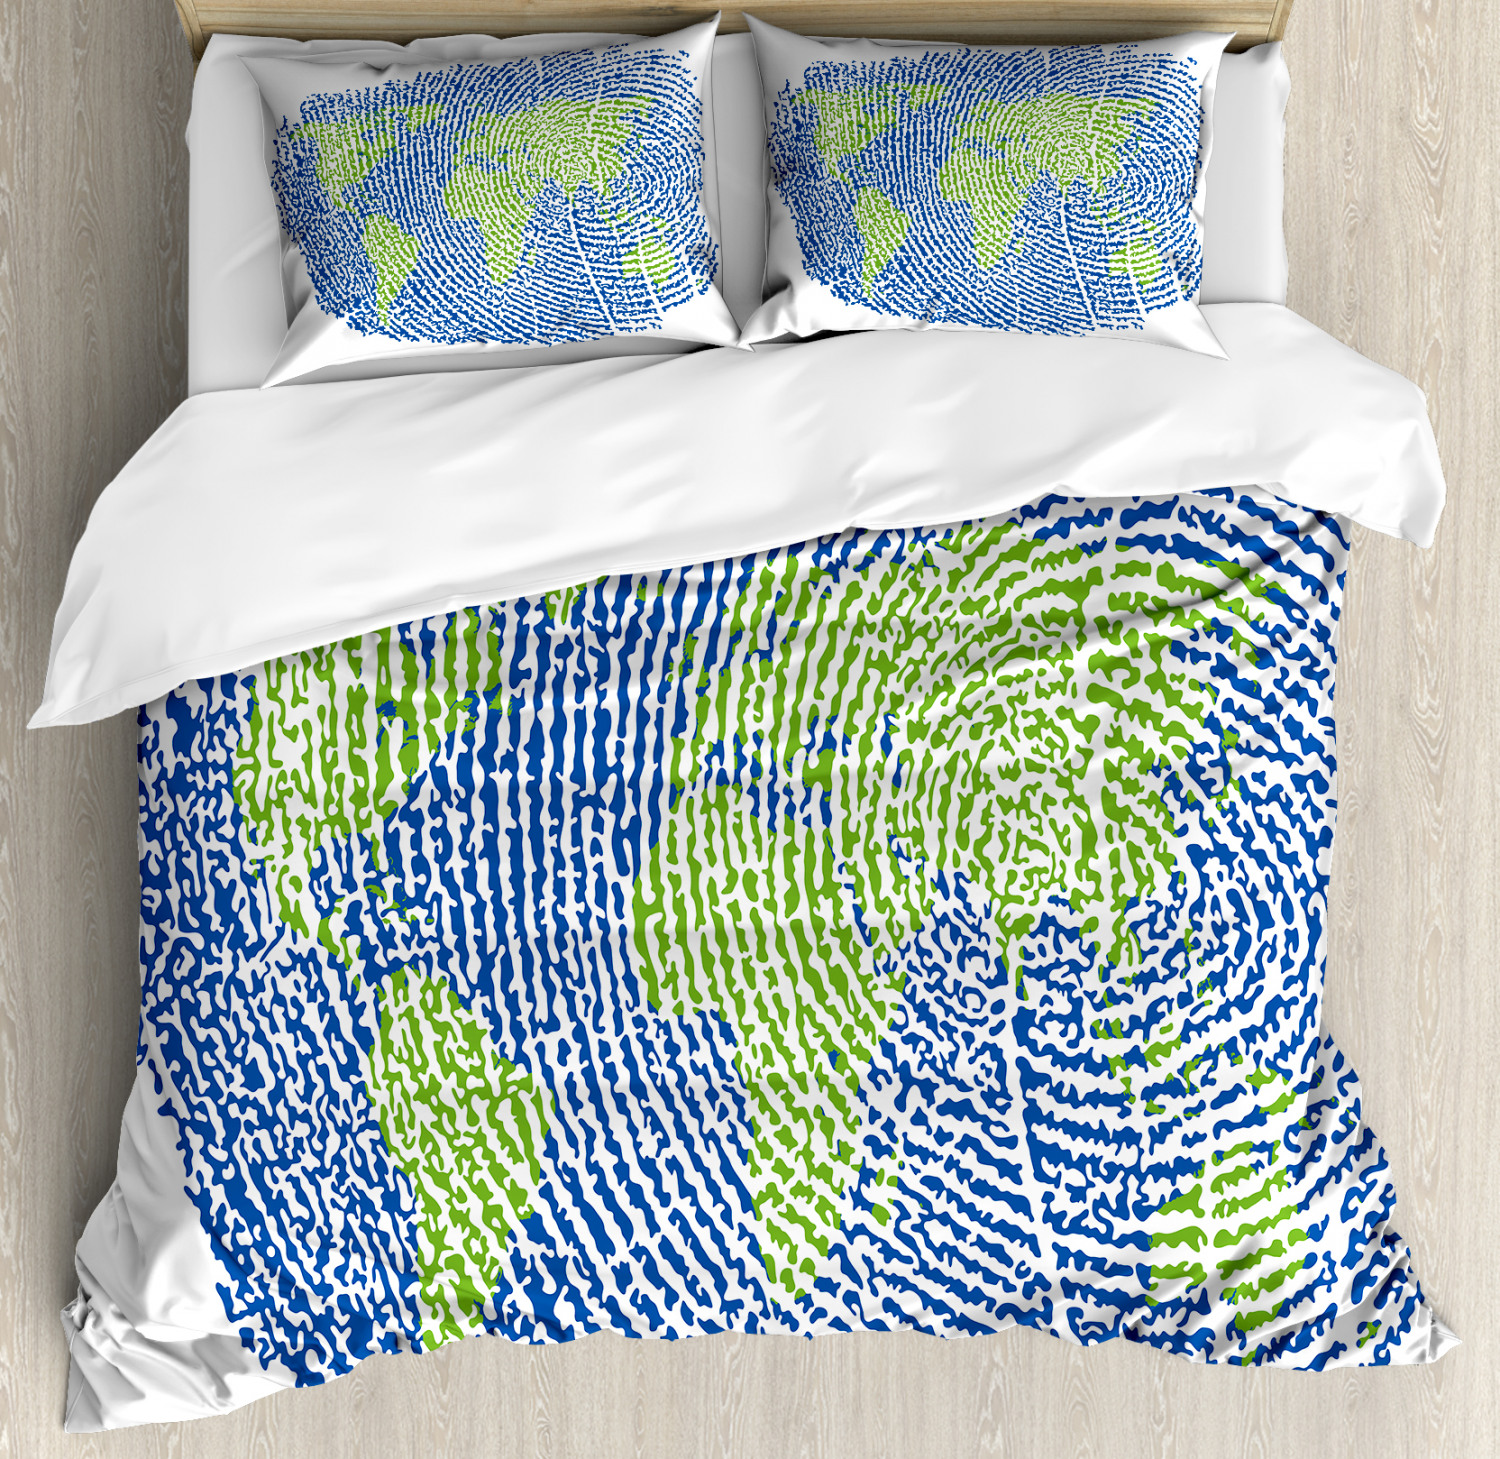 Details about World Map Duvet Cover Set with Pillow Shams Fingerprint World  Map Print